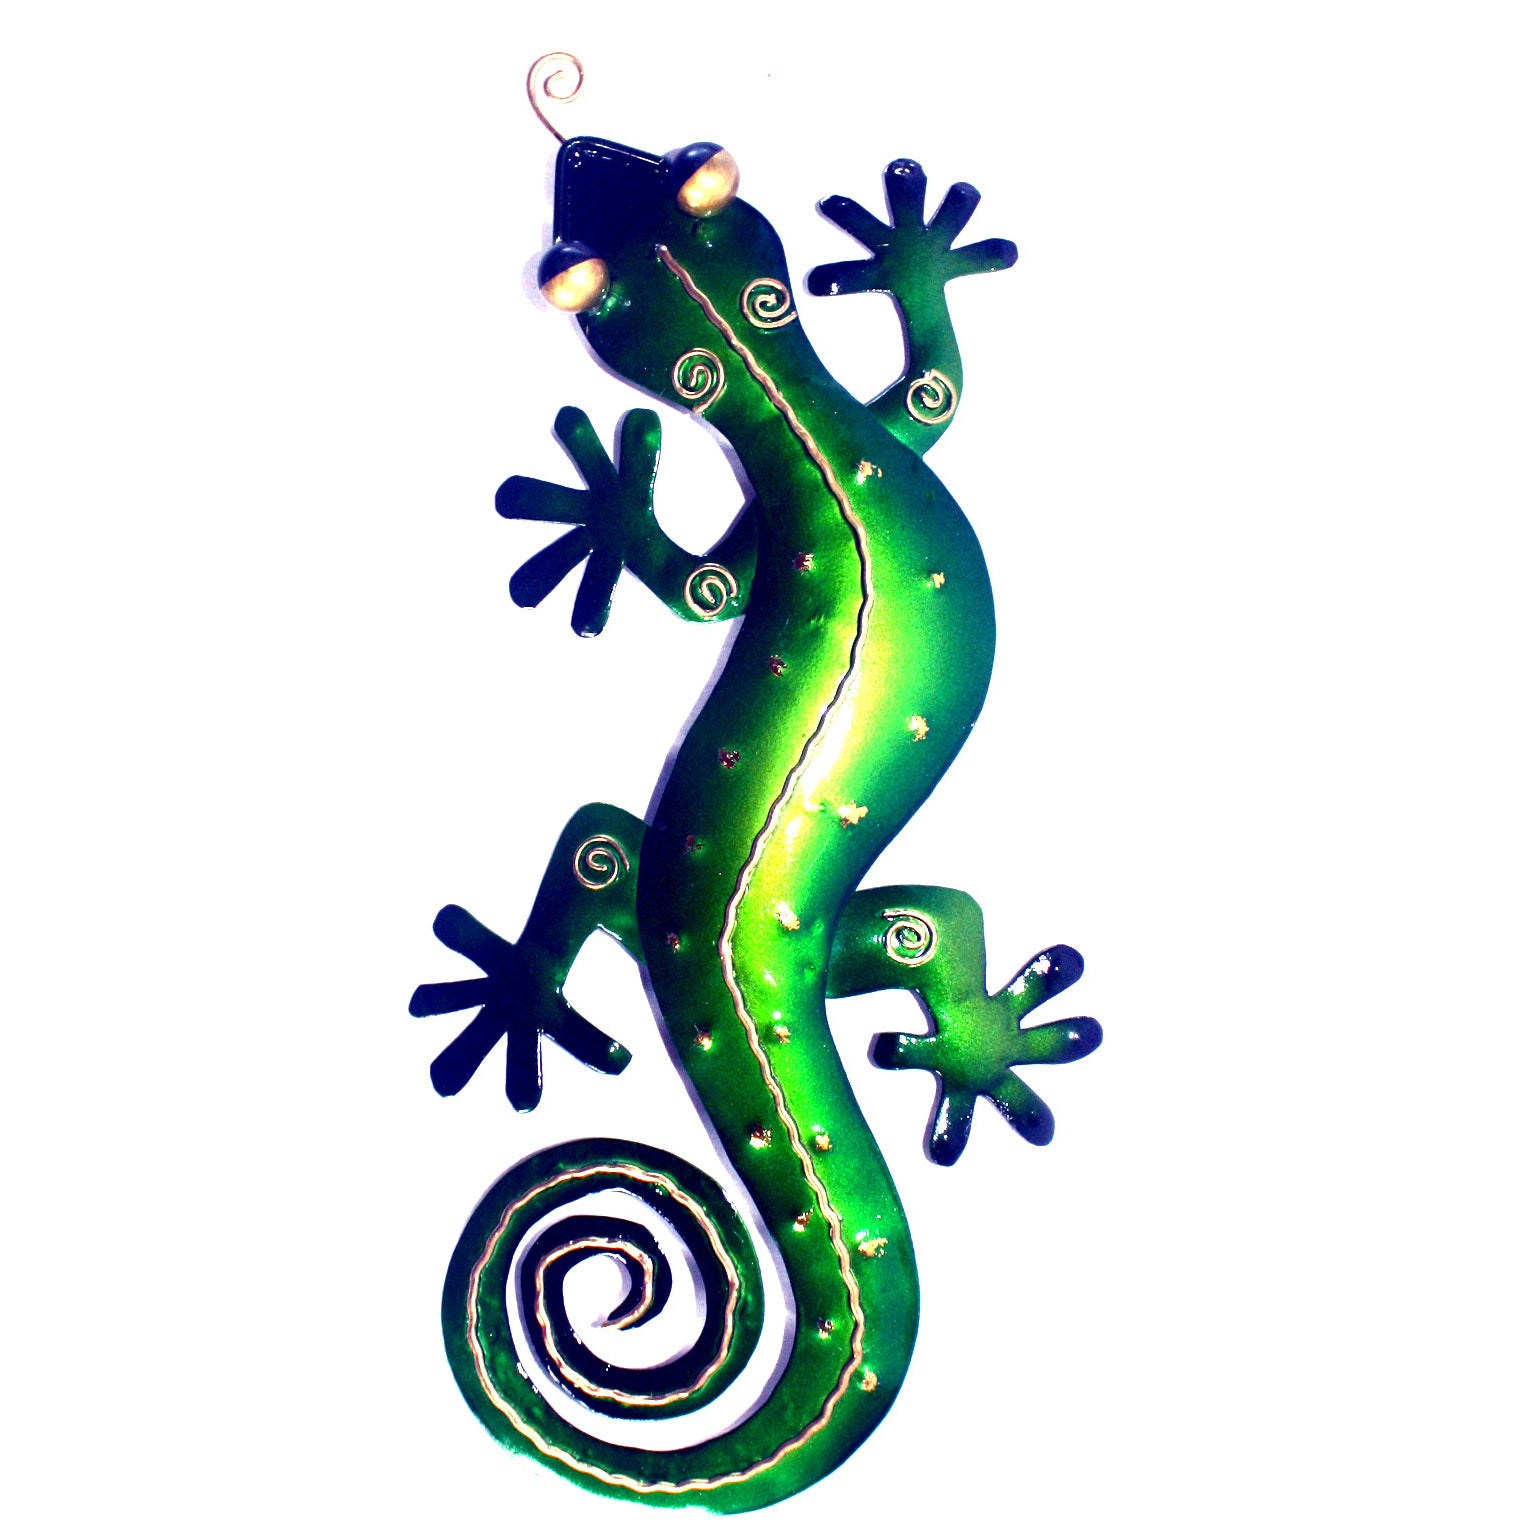 Famous Shop Handmade Iron Medium Green Gecko Wall Decor (Indonesia) - Free within Gecko Wall Decor